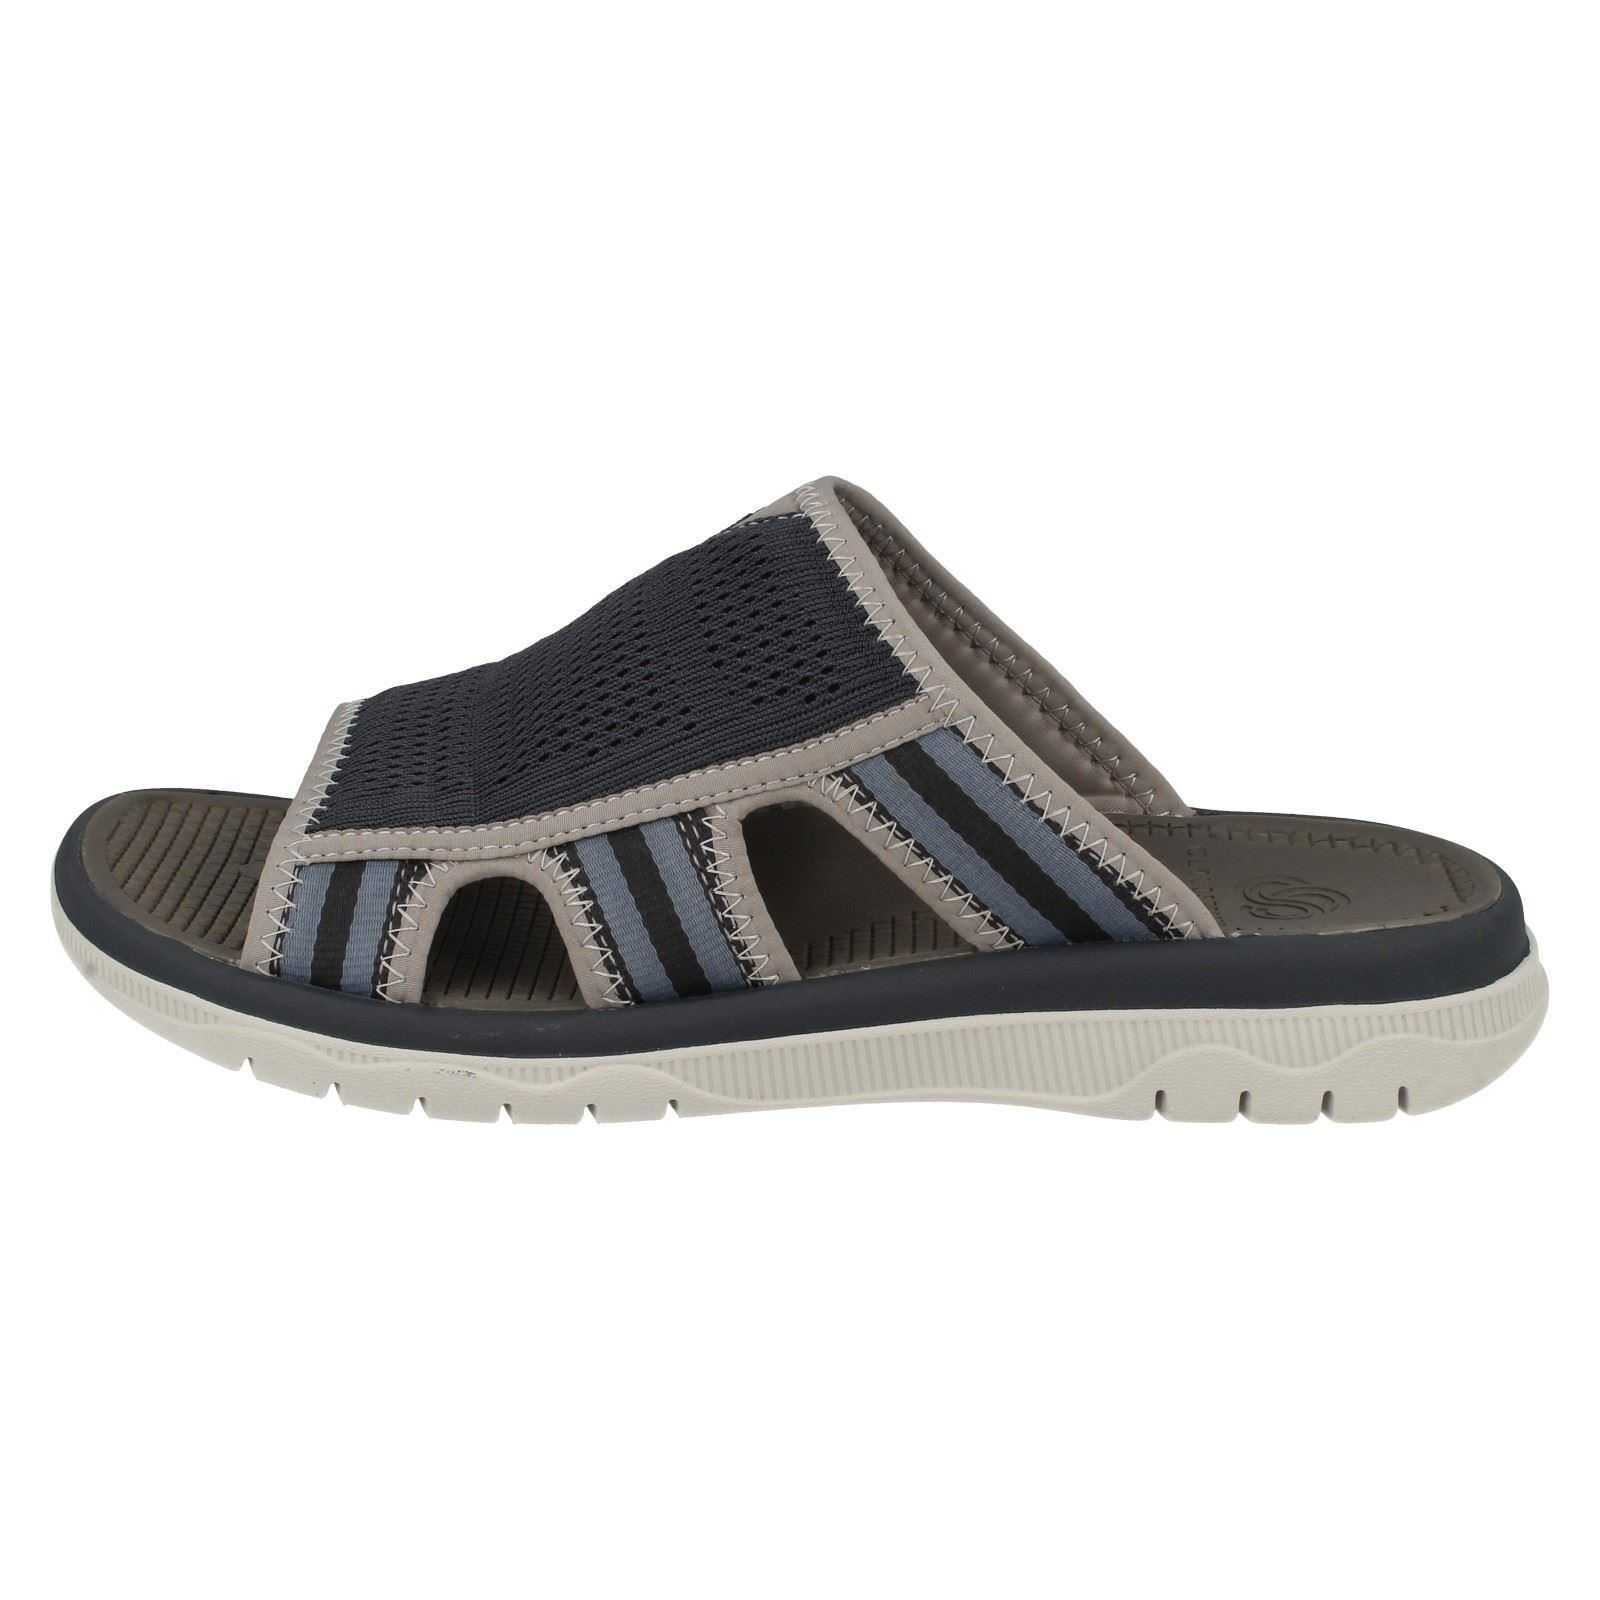 'Mens Slider Clarks' Cloudstepper Slider 'Mens Sandales - Balta Ray cdfe48